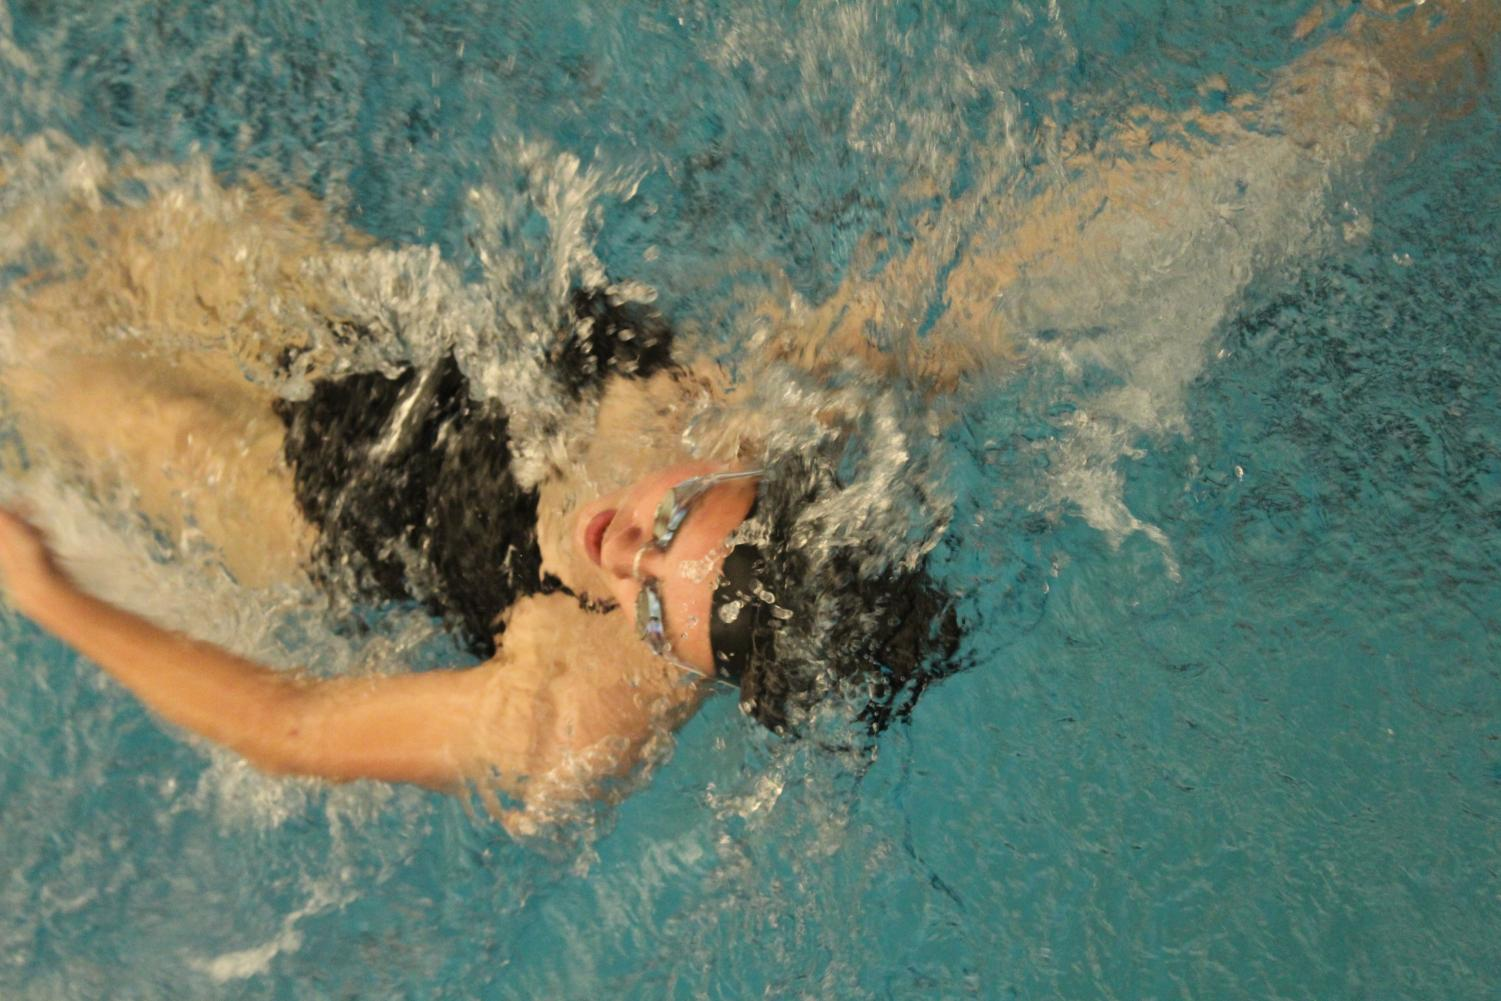 Swimming+into+the+finish%2C+Paige+Howell%2C+sophomore%2C+takes+her+last+few+strokes+in+the+100m+backstroke+Nov.+27.%0A